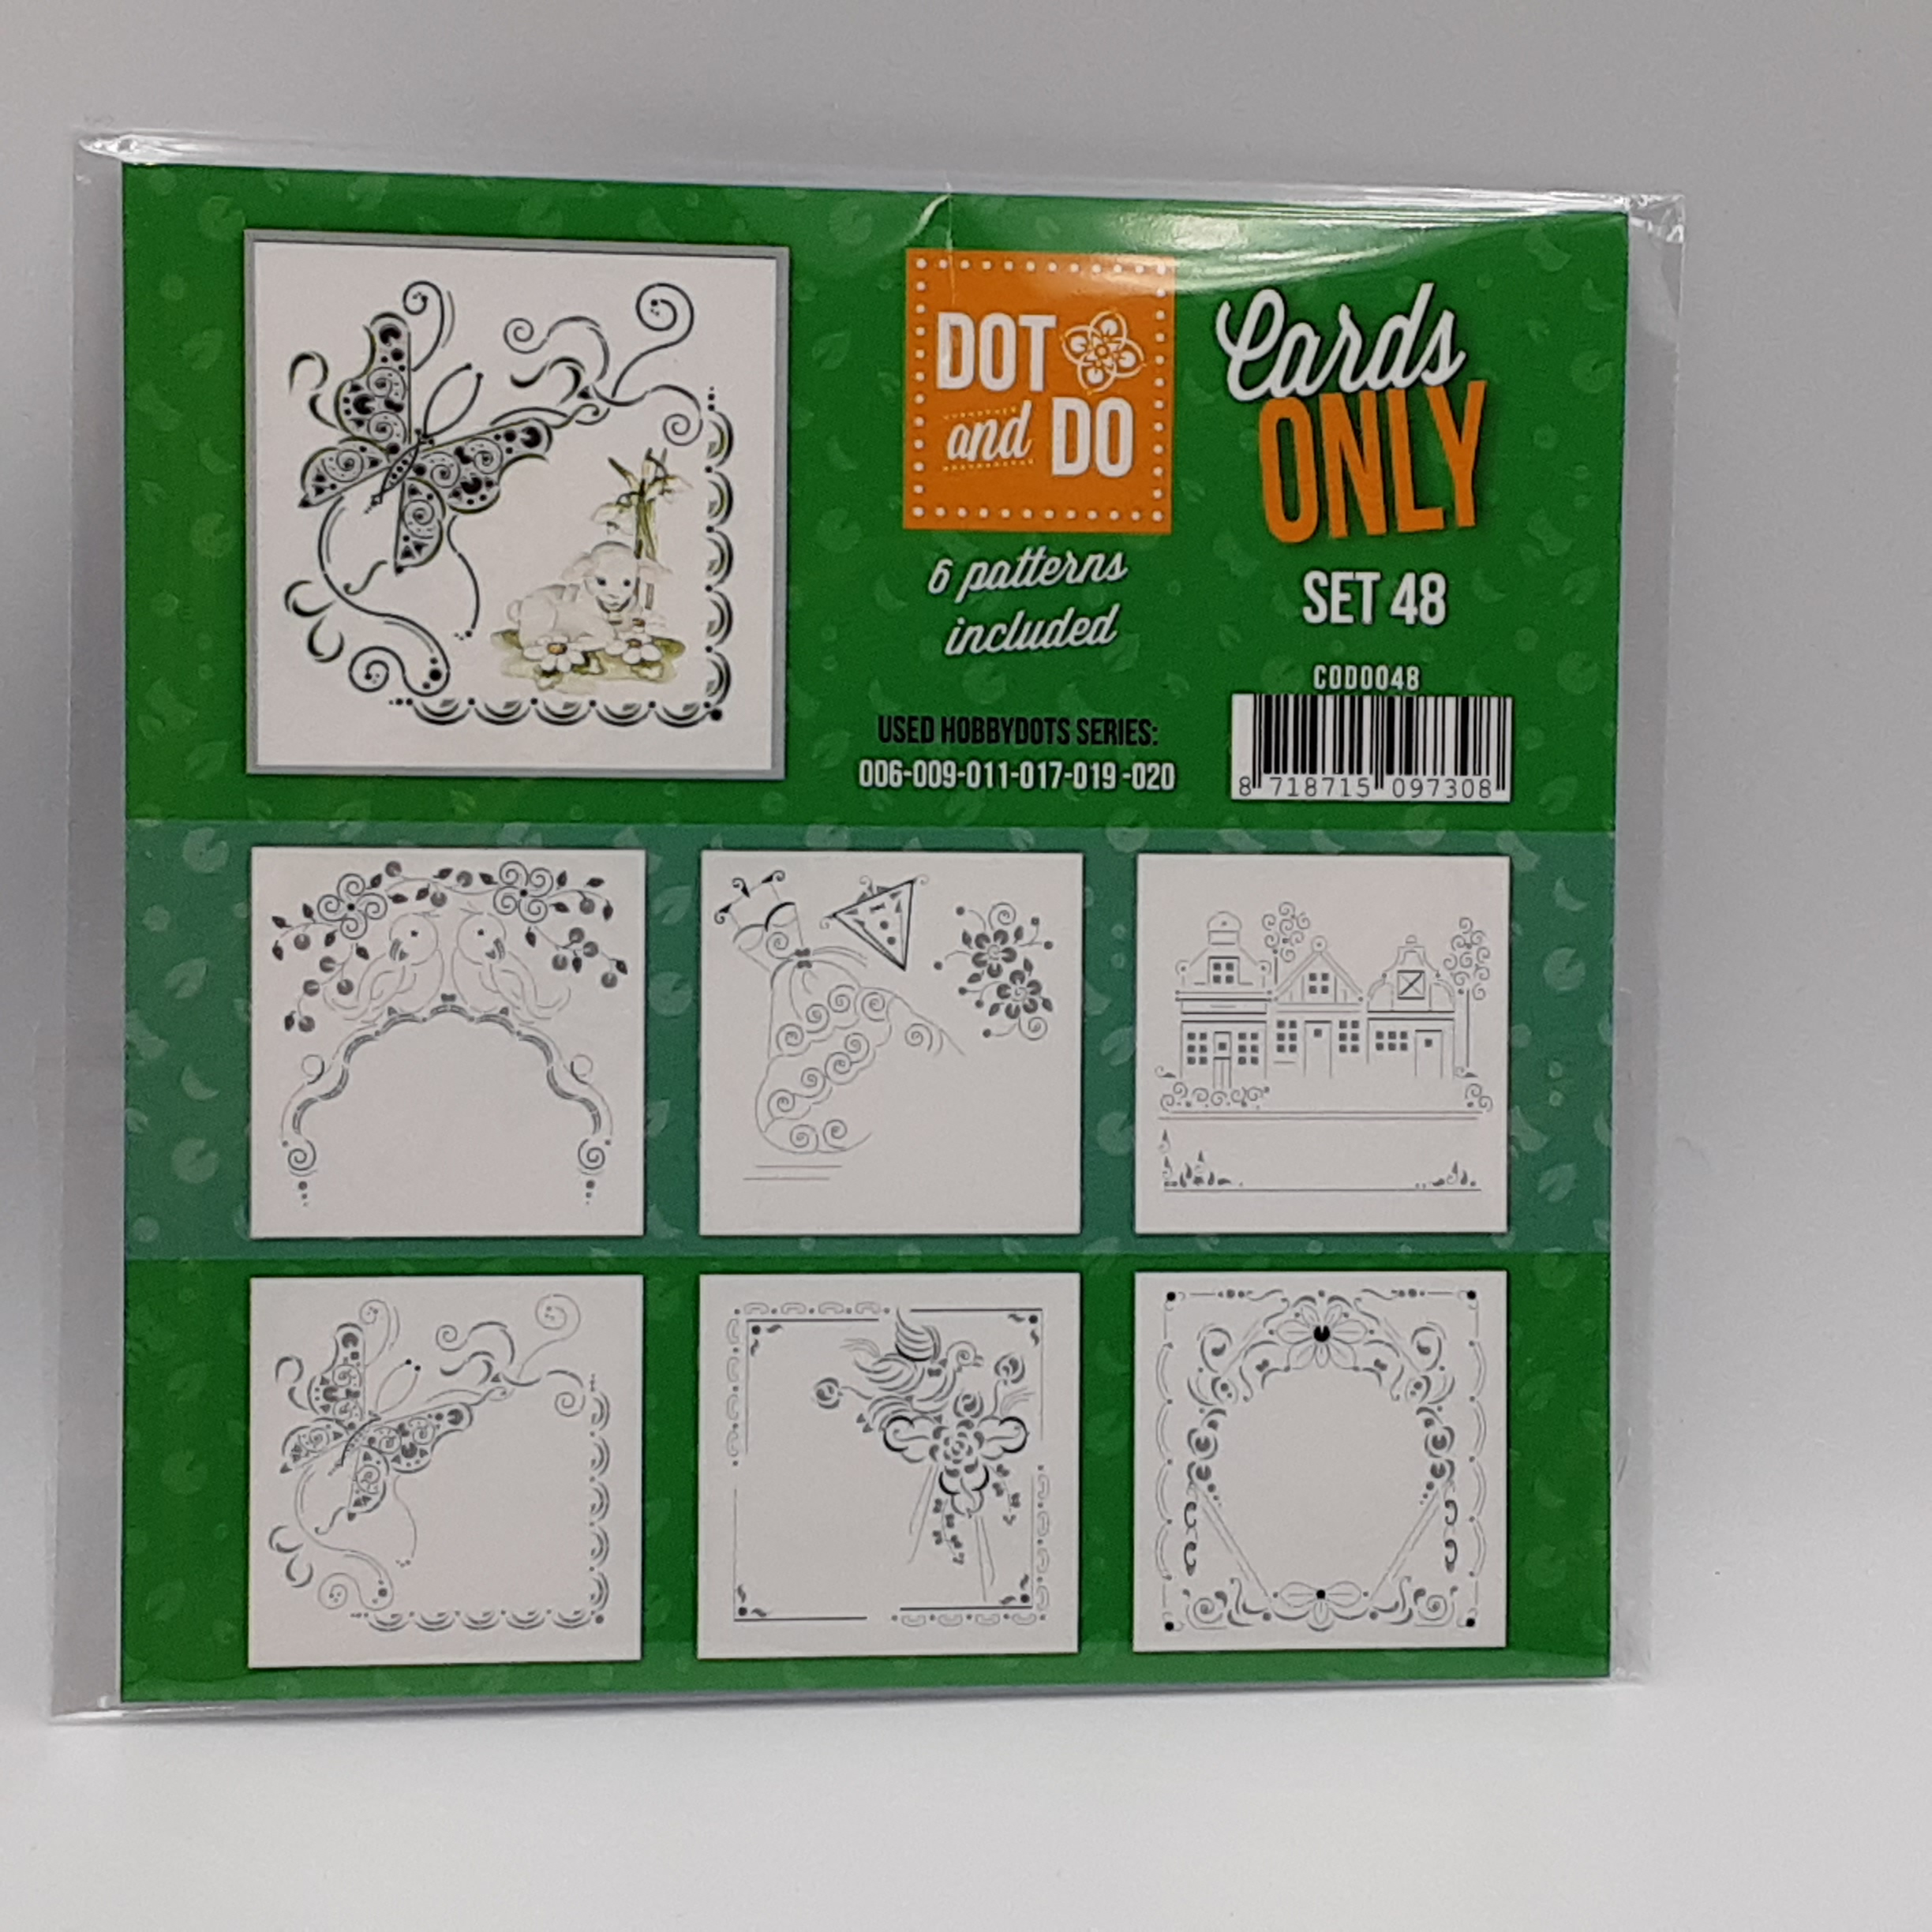 dot and do cards only set 48